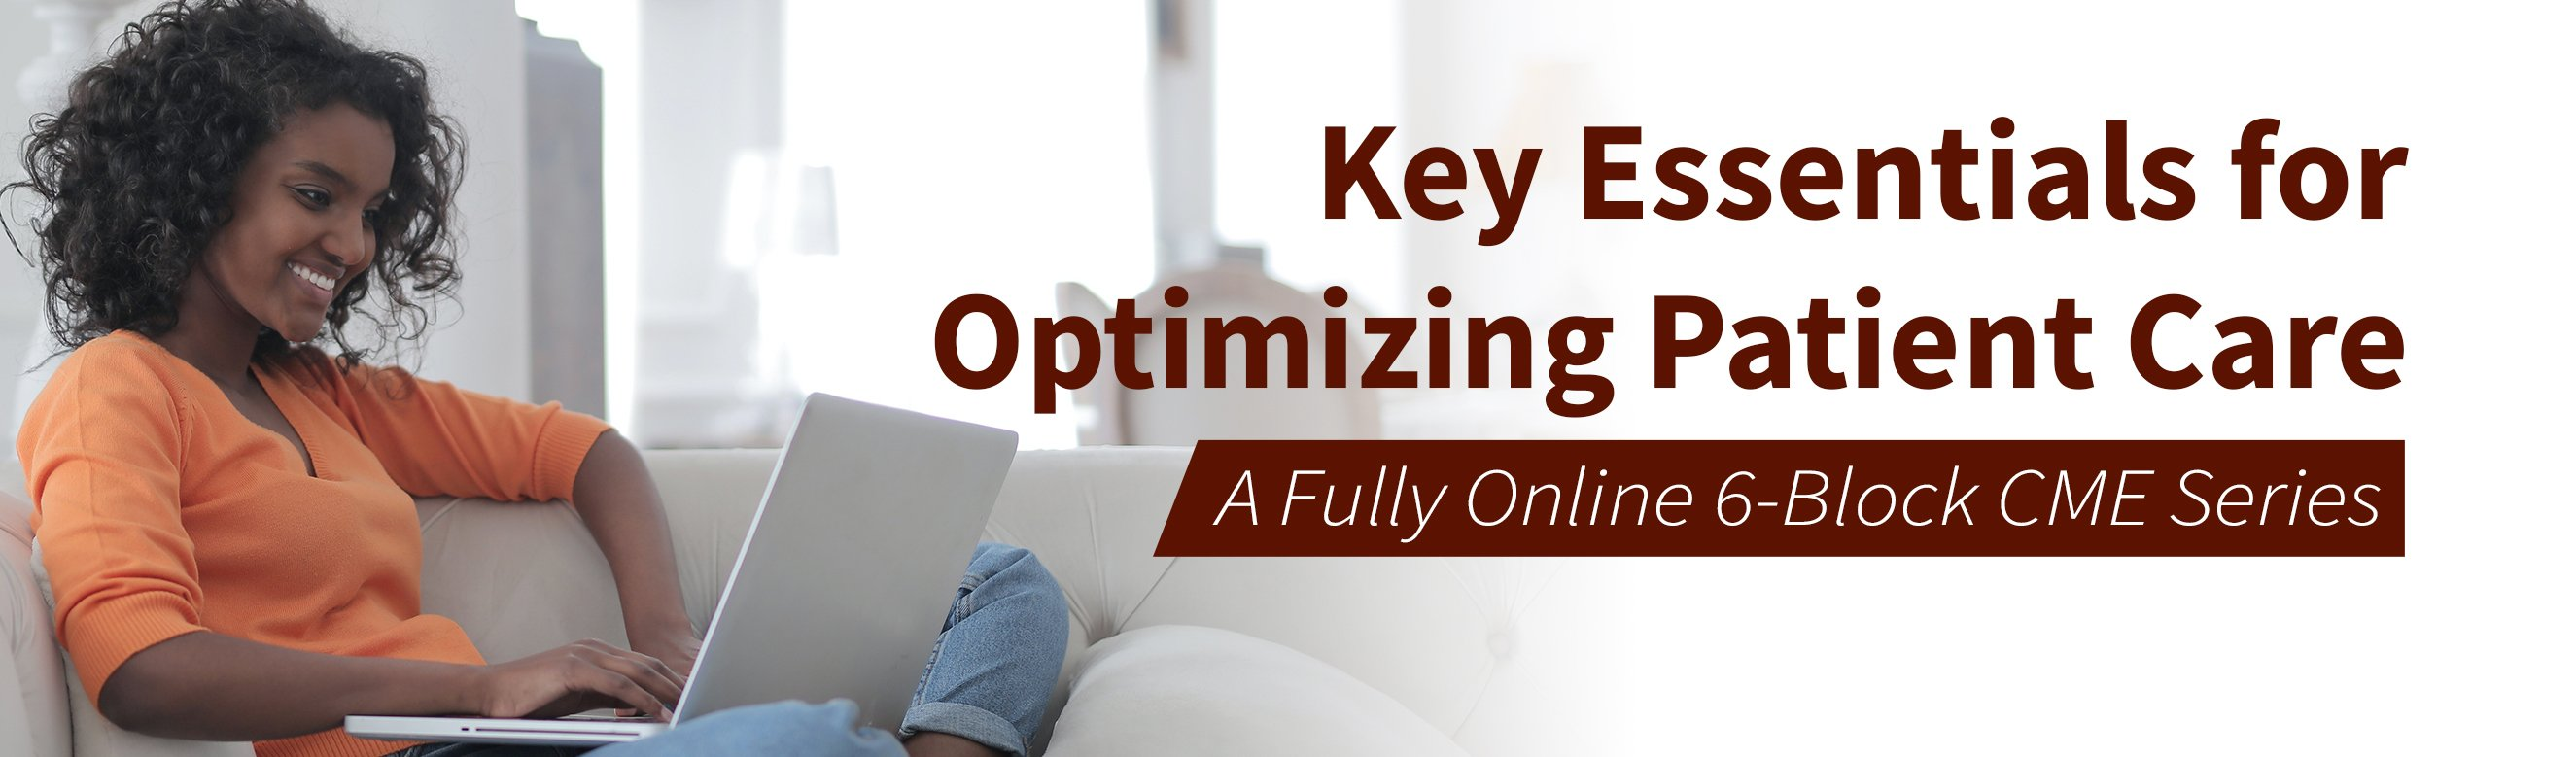 Key Essentials for Optimizing Patient Care